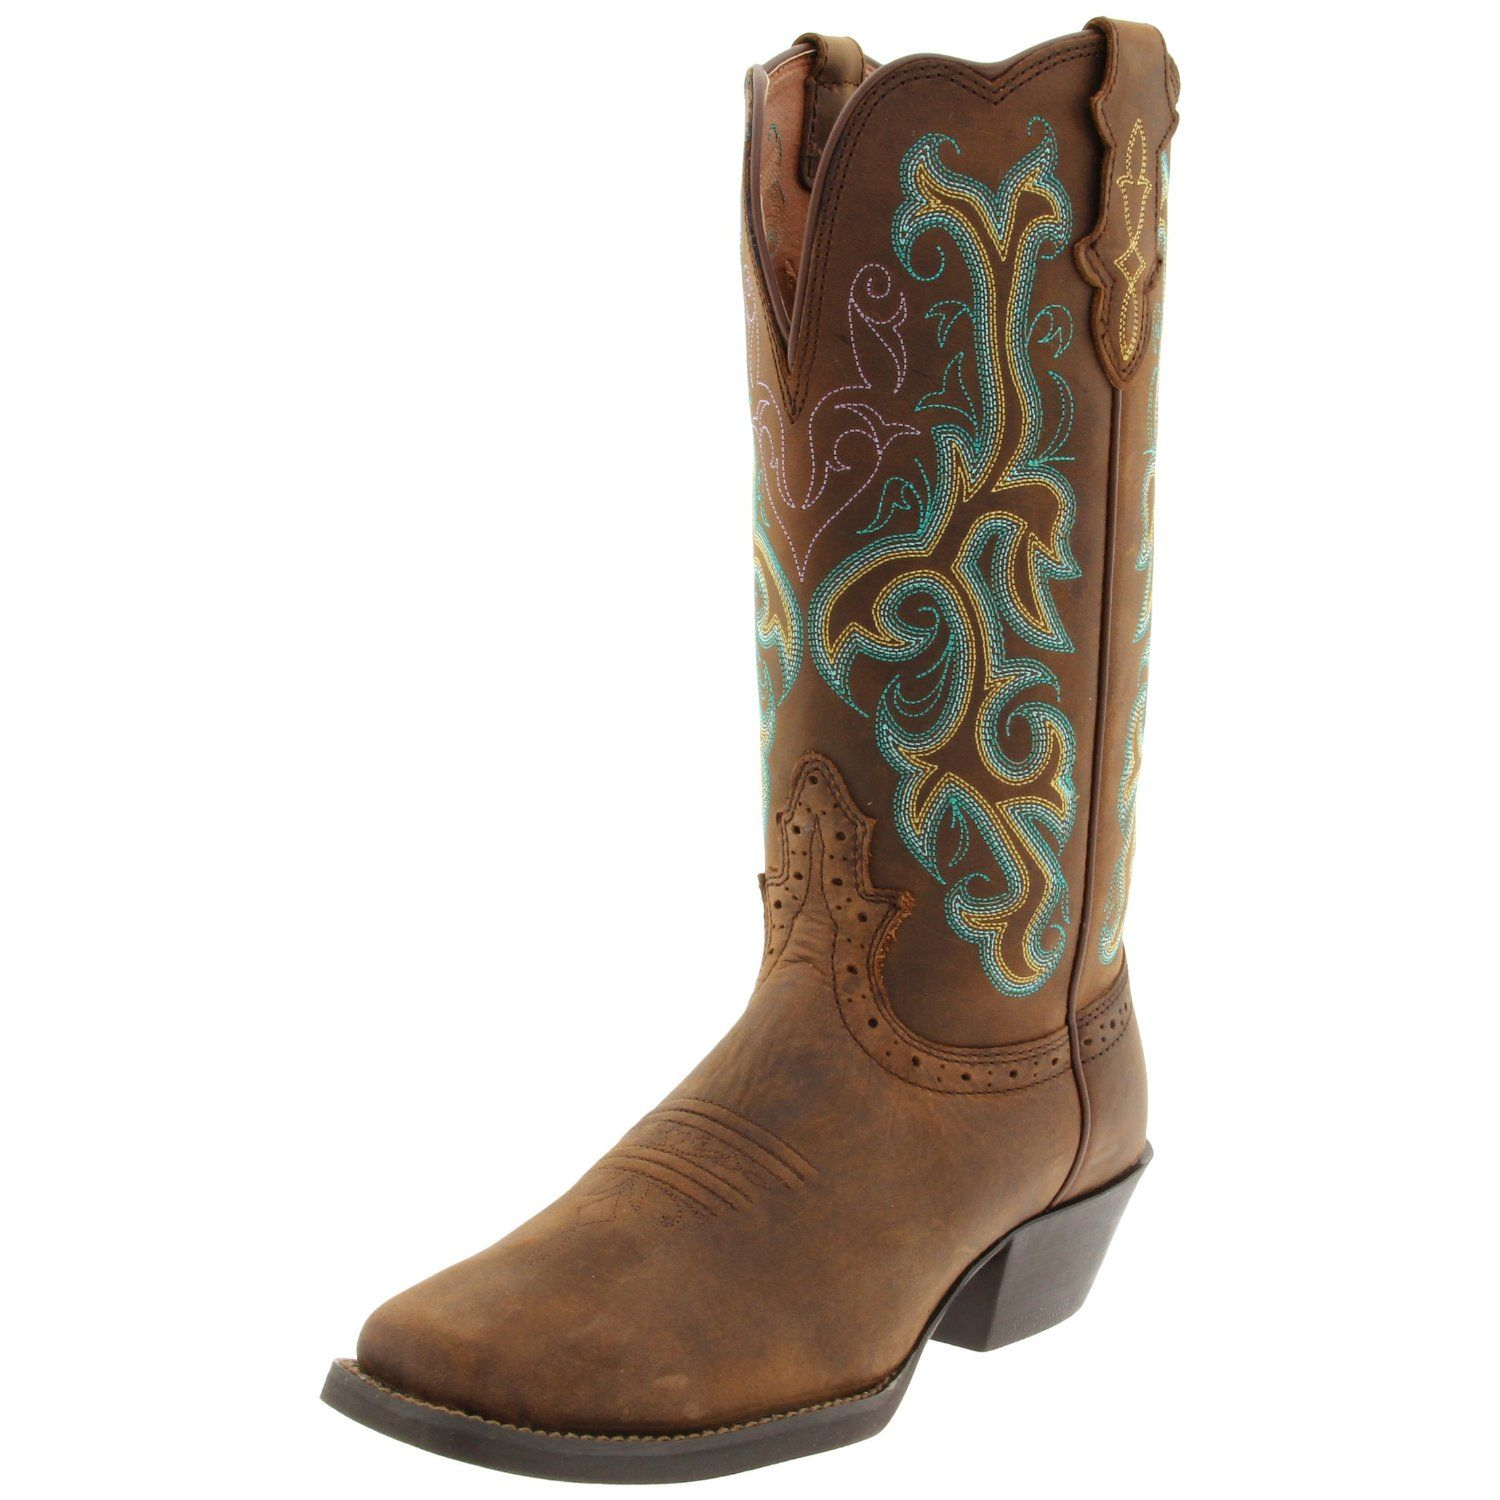 Affordable Cowboy Boots For Women - Yu Boots